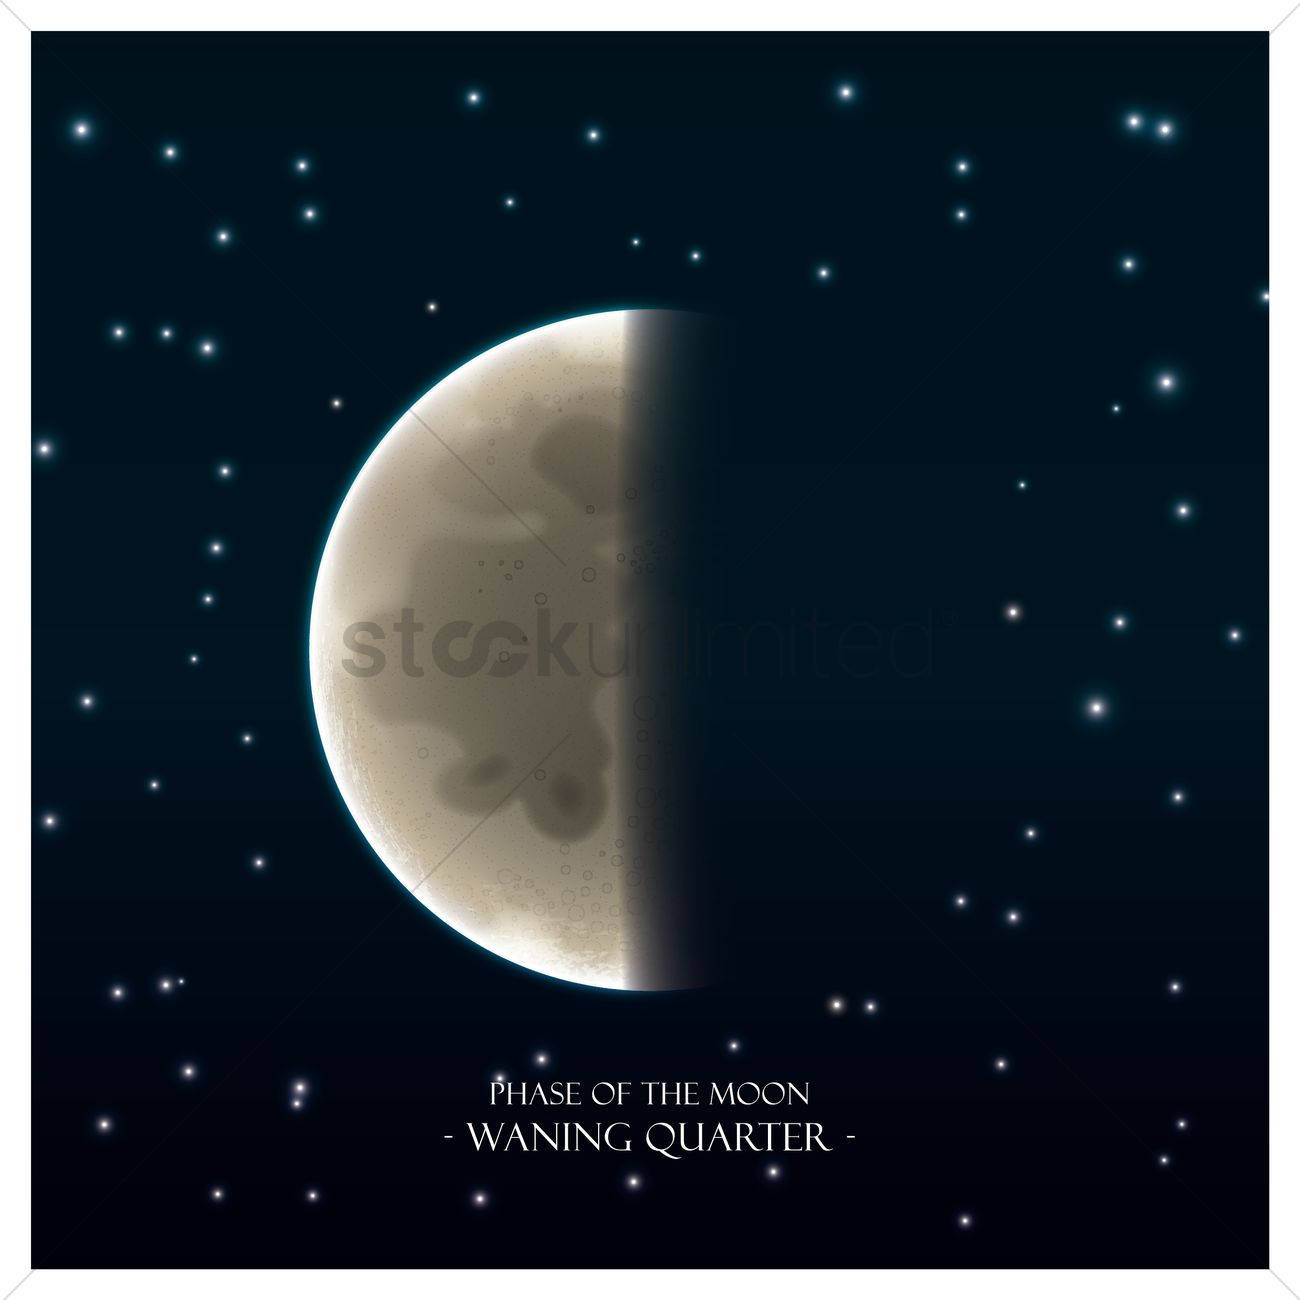 September 2017 When is the Full Moon - Names and Dates